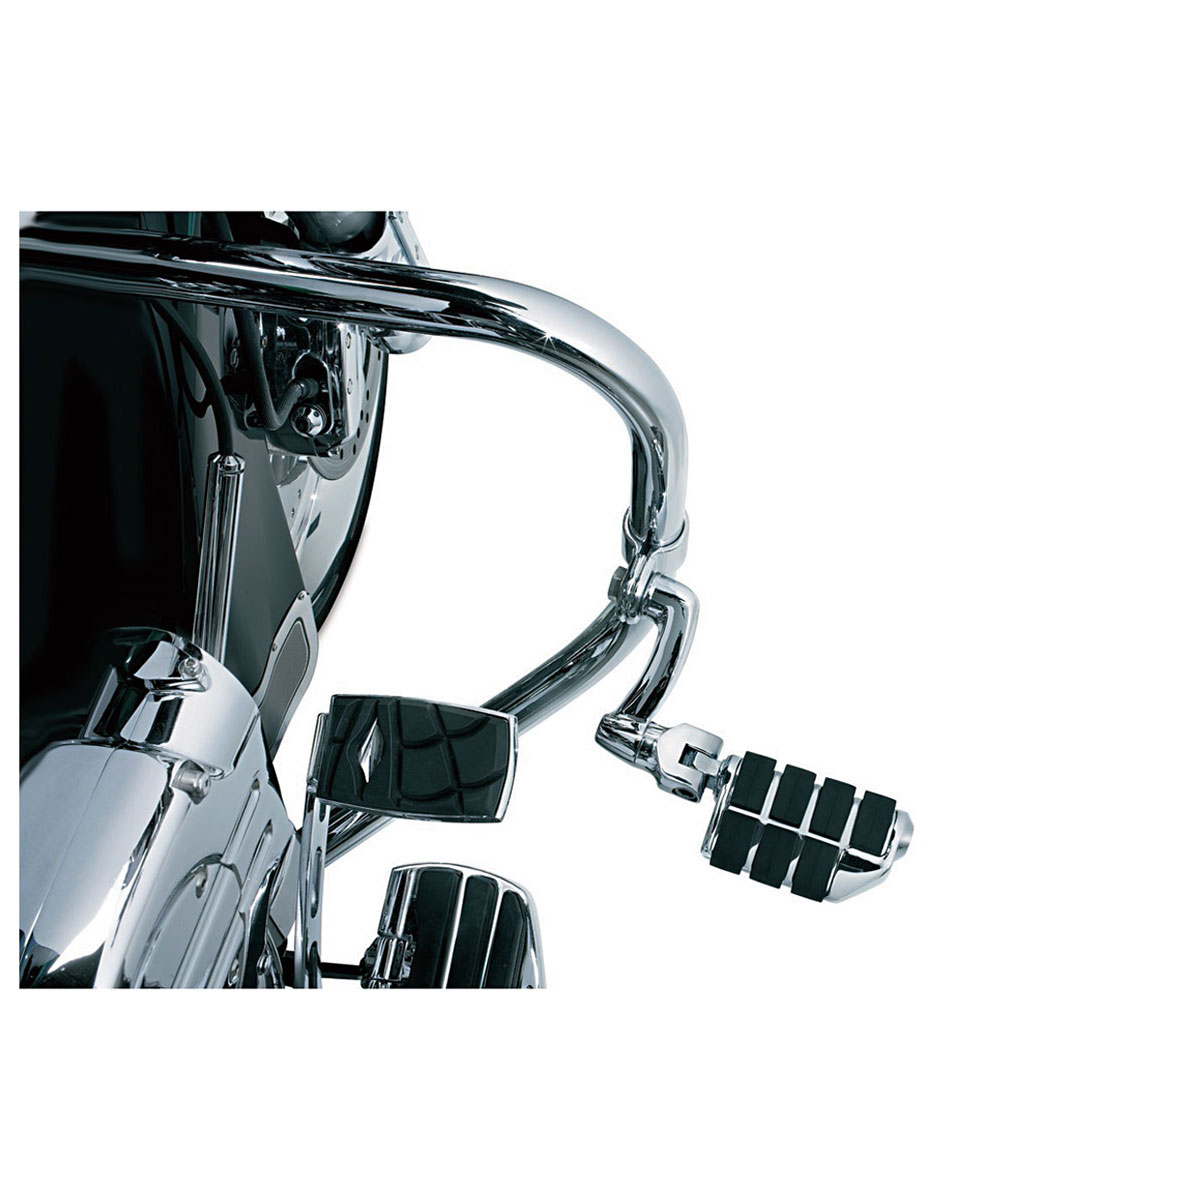 Kuryakyn Longhorn Offset Dually Highway Pegs with 1-1/4″ Magnum Quick Clamps